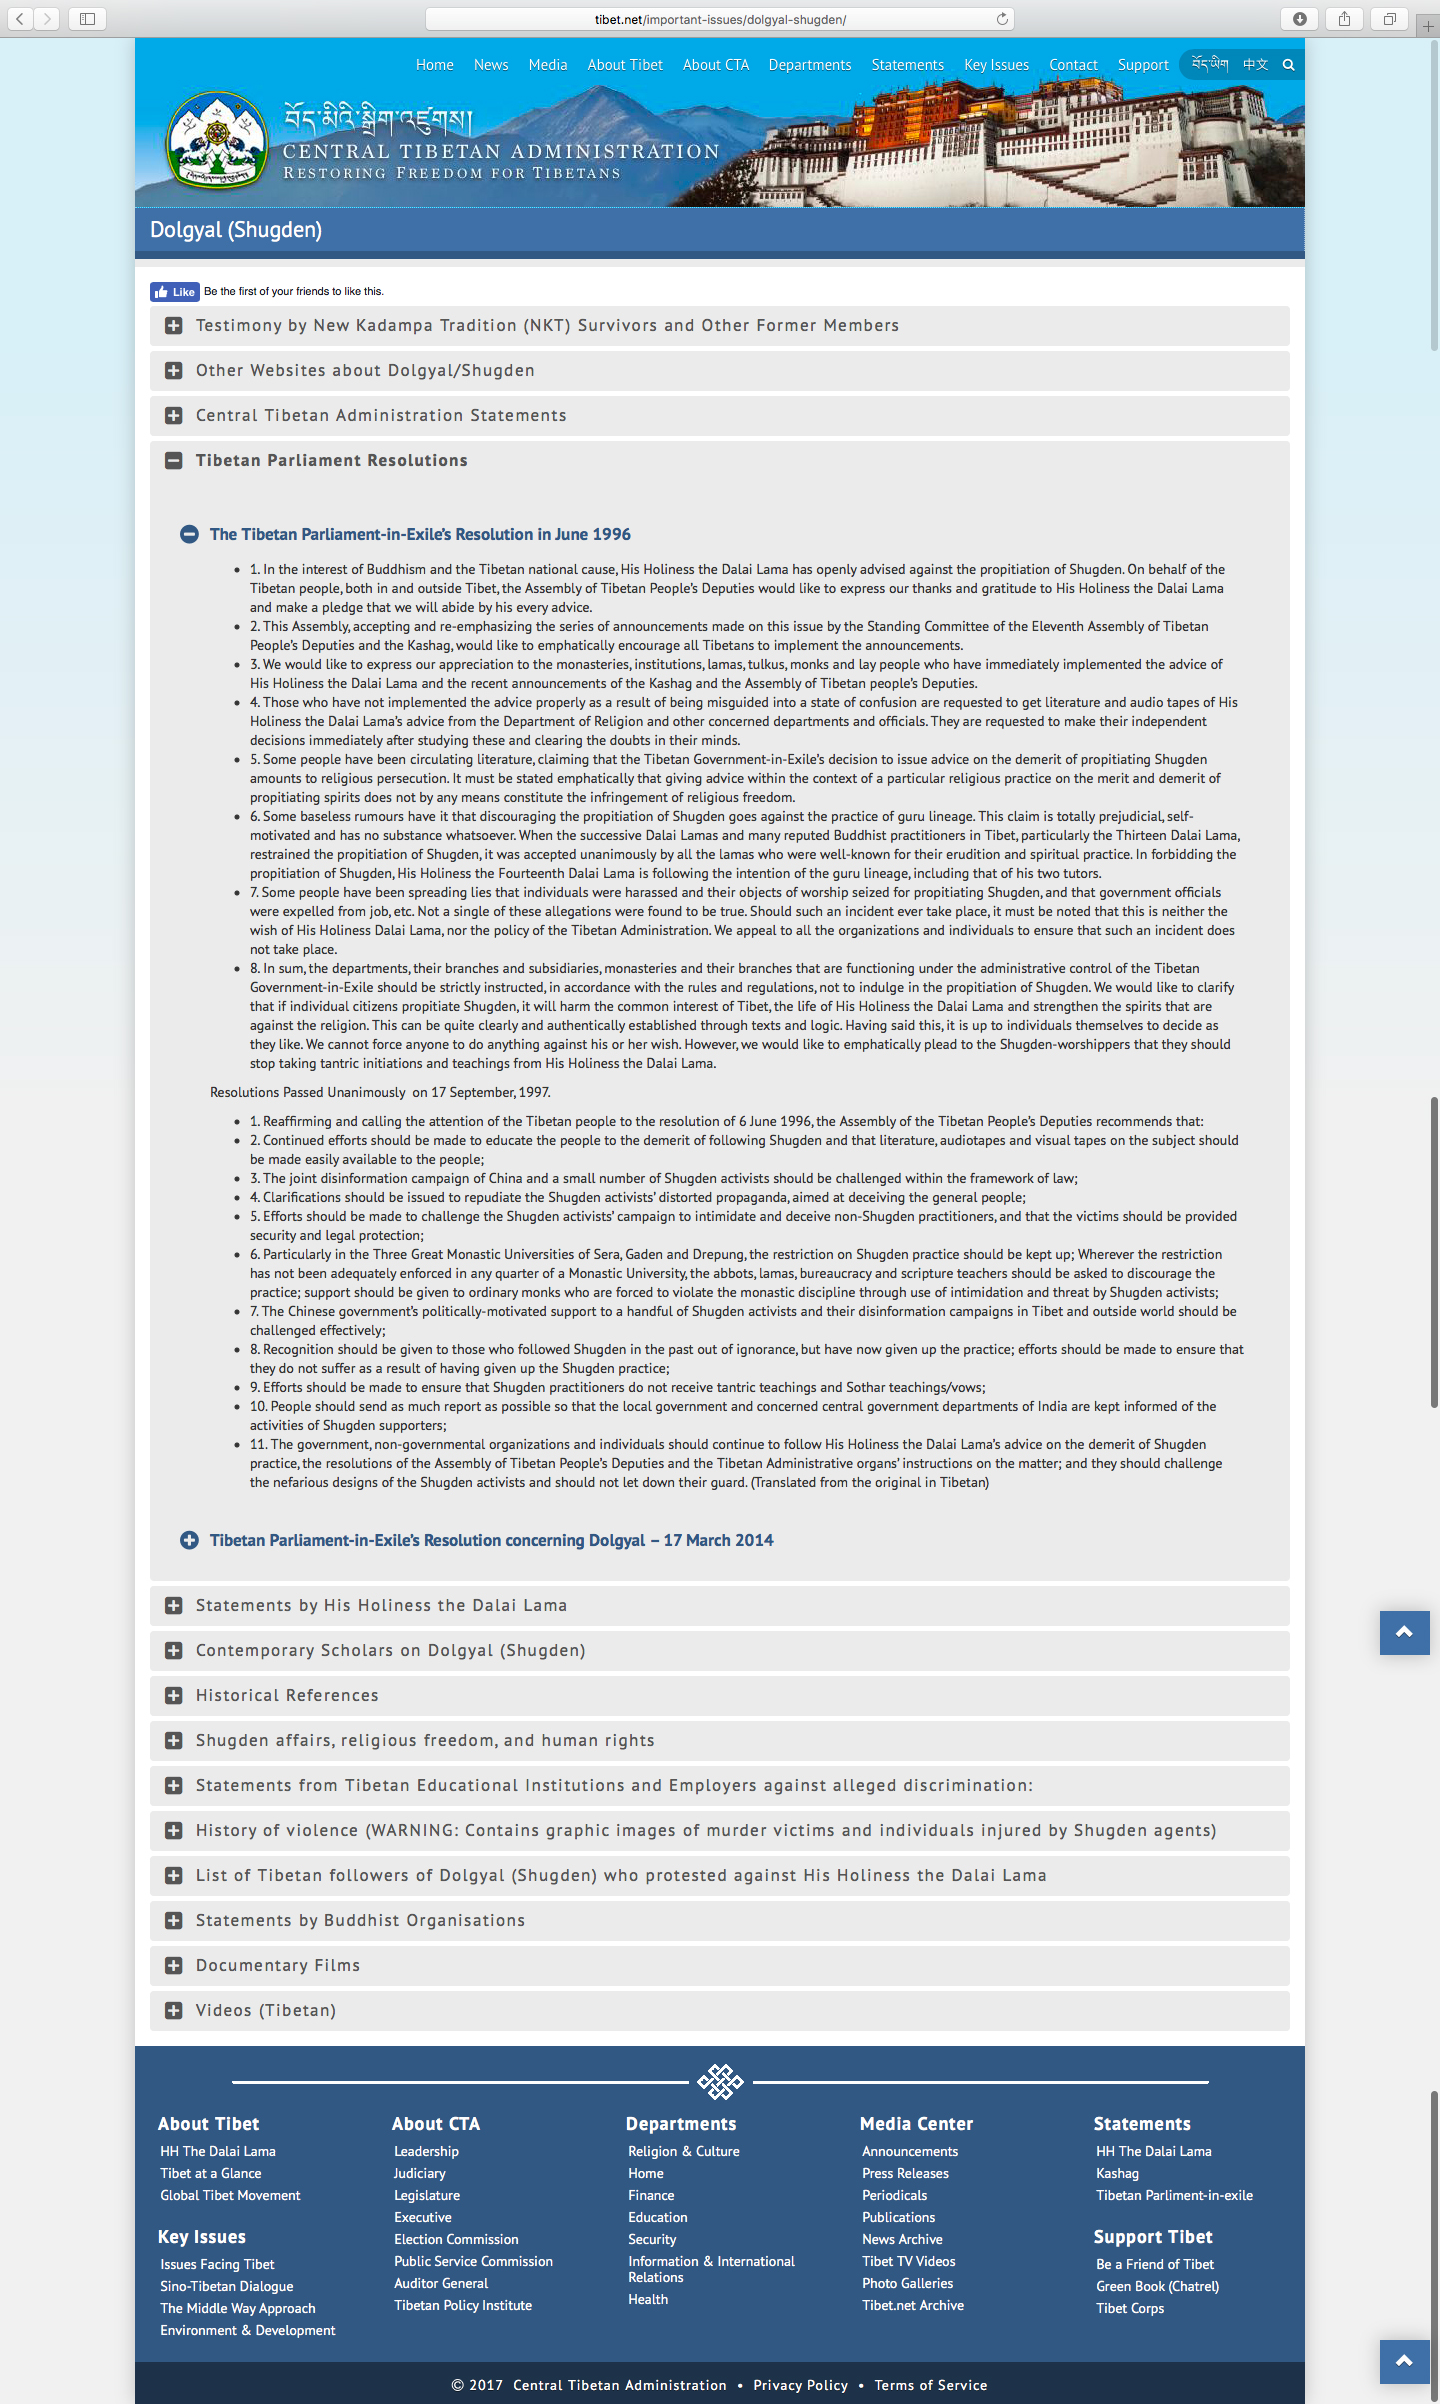 A screenshot of tibet.net, showing the 1996 resolution which proclaimed that departments under the Tibetan leadership should not propitiate Dorje Shugden and that doing so will harm the Dalai Lama's life.